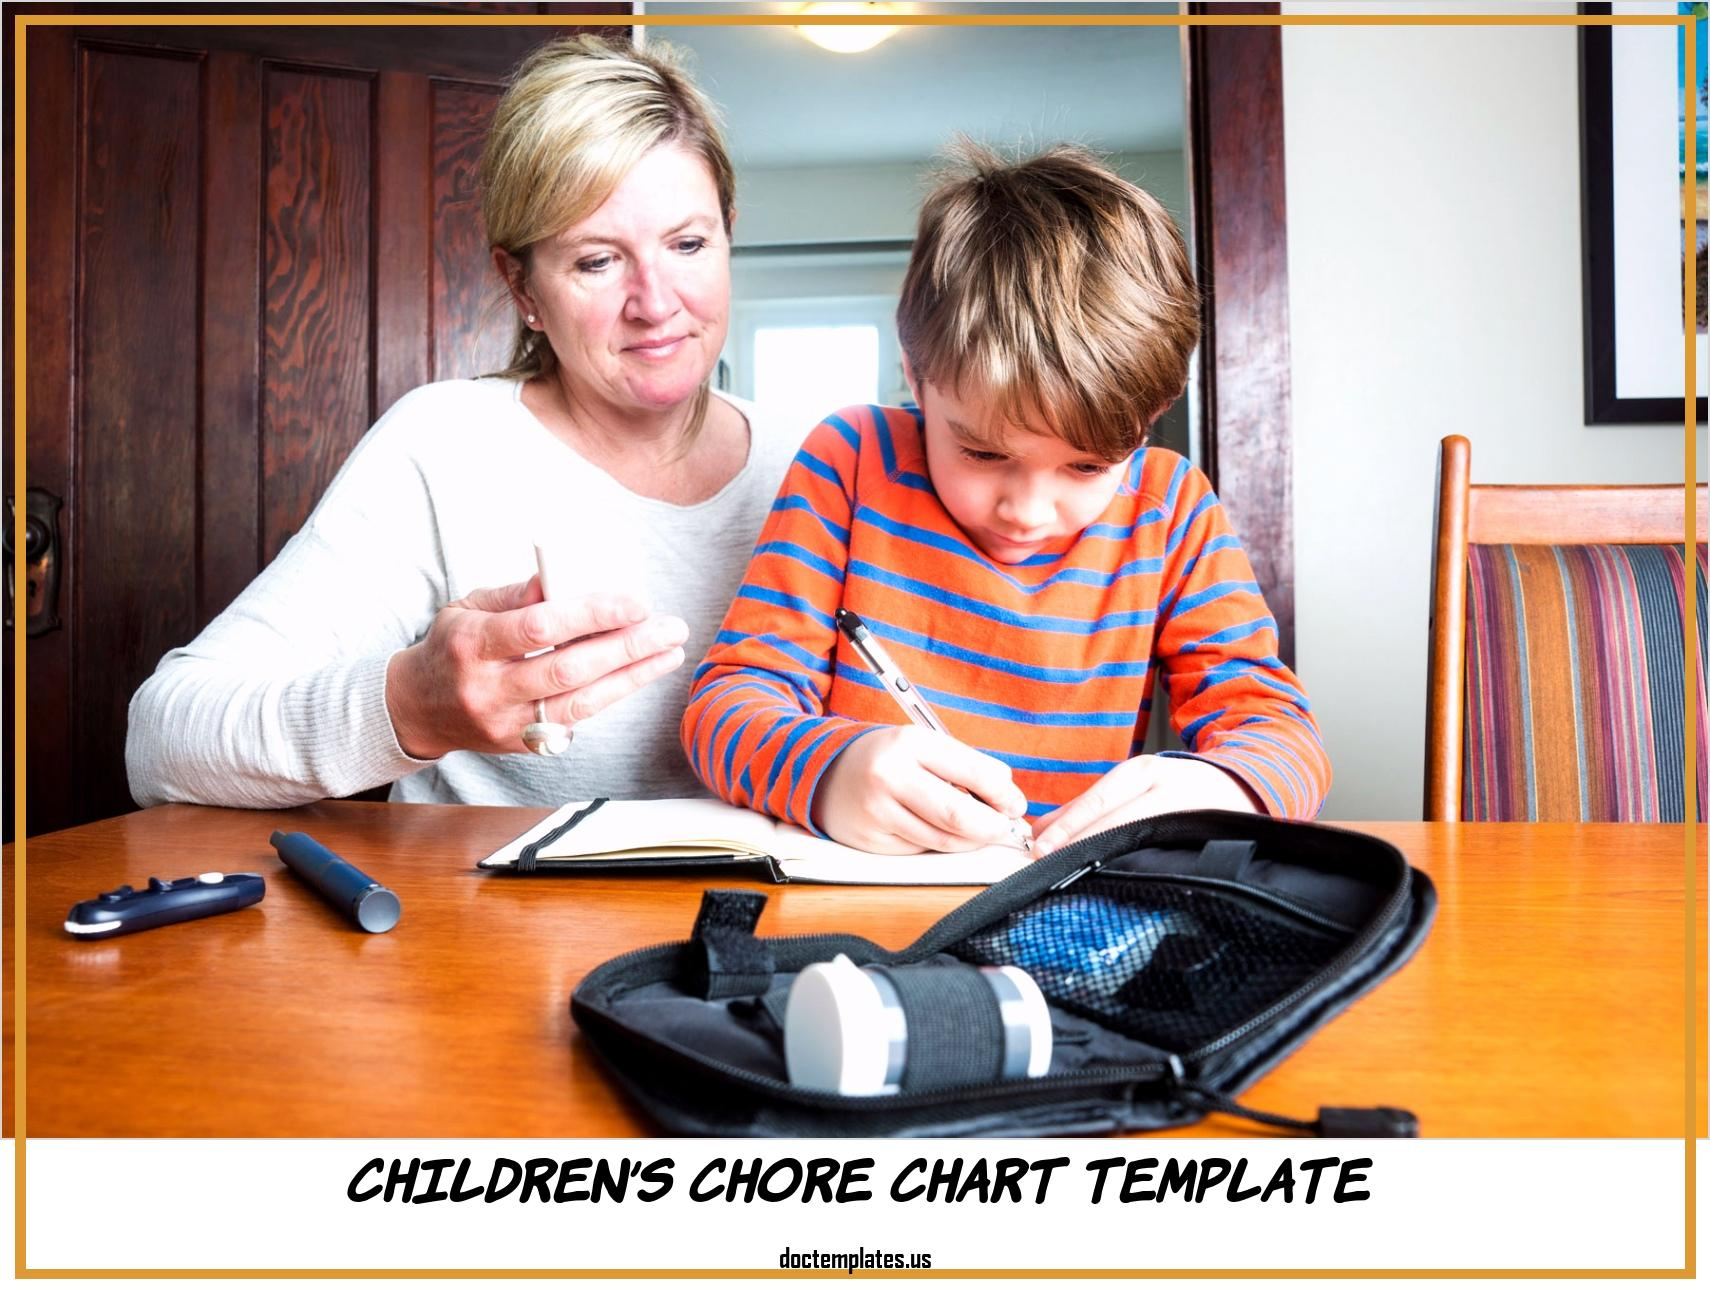 Children's Chore Chart Template 18174 Ikf0x Causes Of Childhood Diabetes How Disease Passes From Knu@[o H G T E N B E B T D A S D F G H J K L O I U Y T R M N W C G T Y U X Z C C X Z A S Q W D D A J H H U I K J T U F I E F D W H I O C P L O K I U J M N H Y T R F V C D E W S X Z A Q S Z X C V B N M N B V C C X Z A Q W E E D C V T